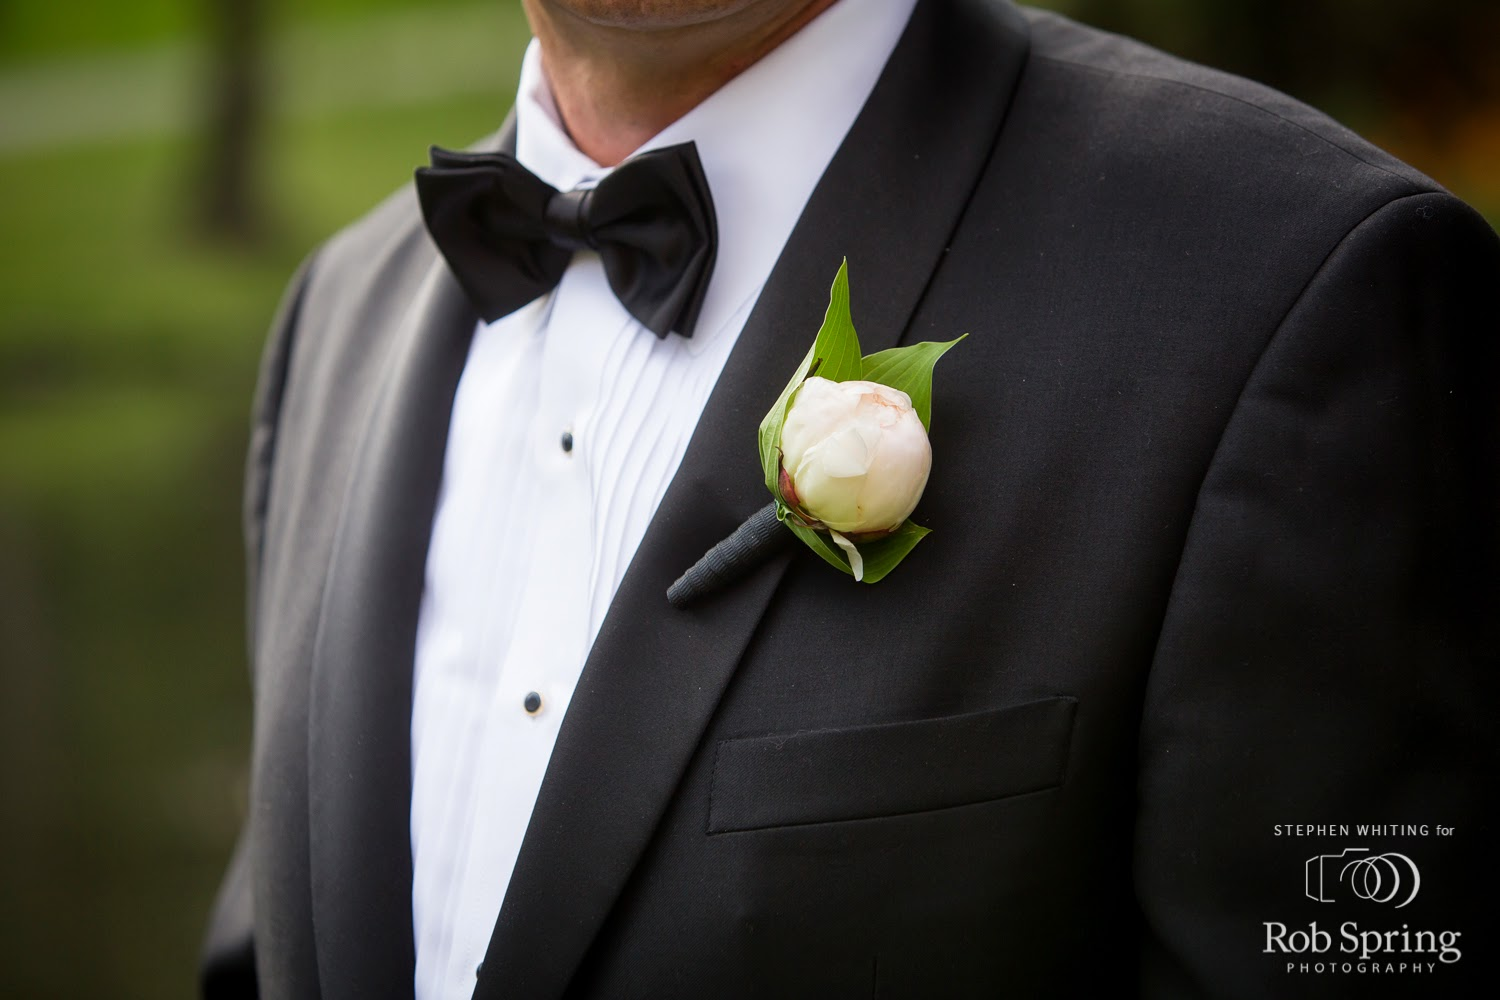 Tight Peony Bud Boutonniere - Boutonnieres - Wedding Flowers - Groom - Usher - Best Man - Groomsmen - Ushers - Groom's Boutonniere